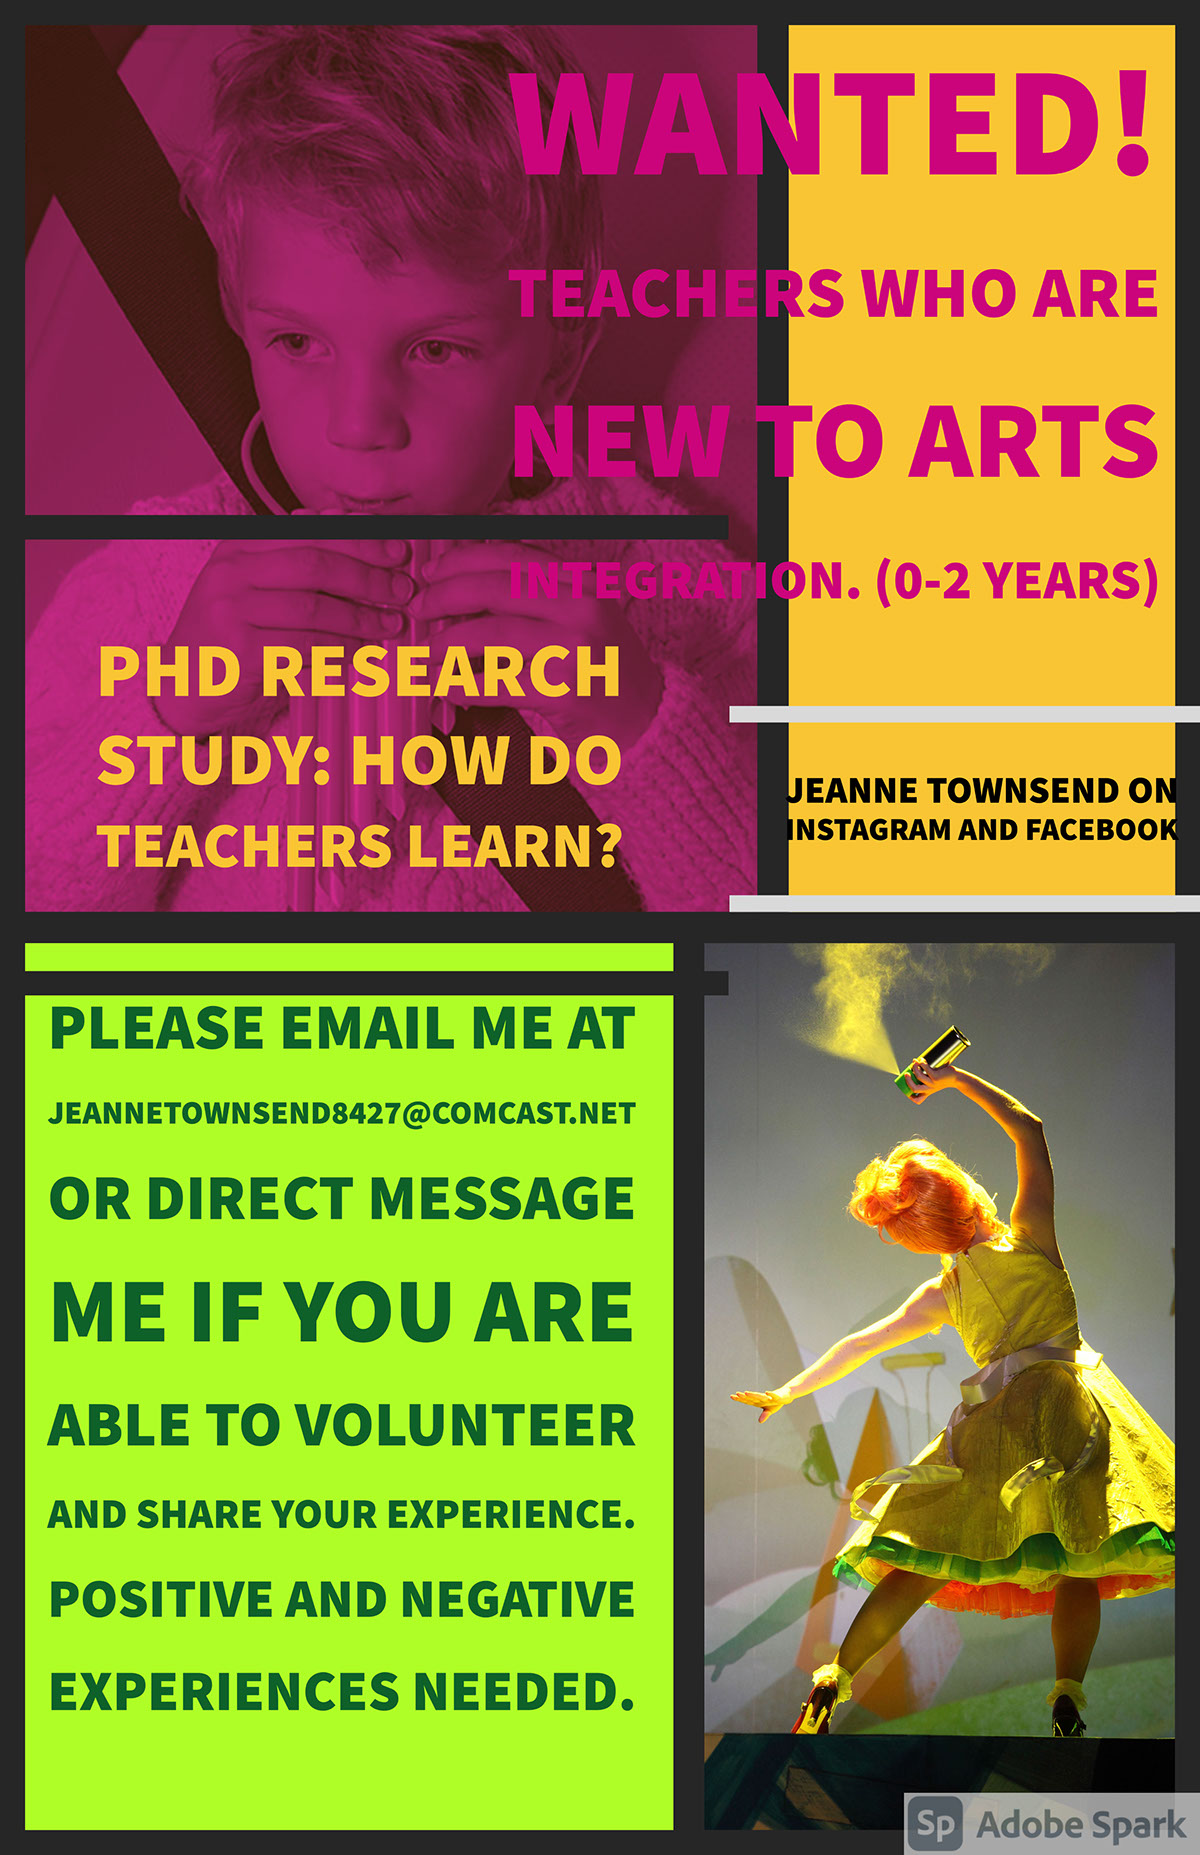 Wanted! Teachers who are new to arts integration. (0-2 Years) Wanted! Teachers who are new to arts integration. (0-2 Years) PhD Research Study: How do teachers learn? Please email me at jeannetownsend8427@comcast.net or direct message me if you are able to volunteer and share your experience. Positive and Negative Experiences Needed. jeanne townsend on instagram and facebook